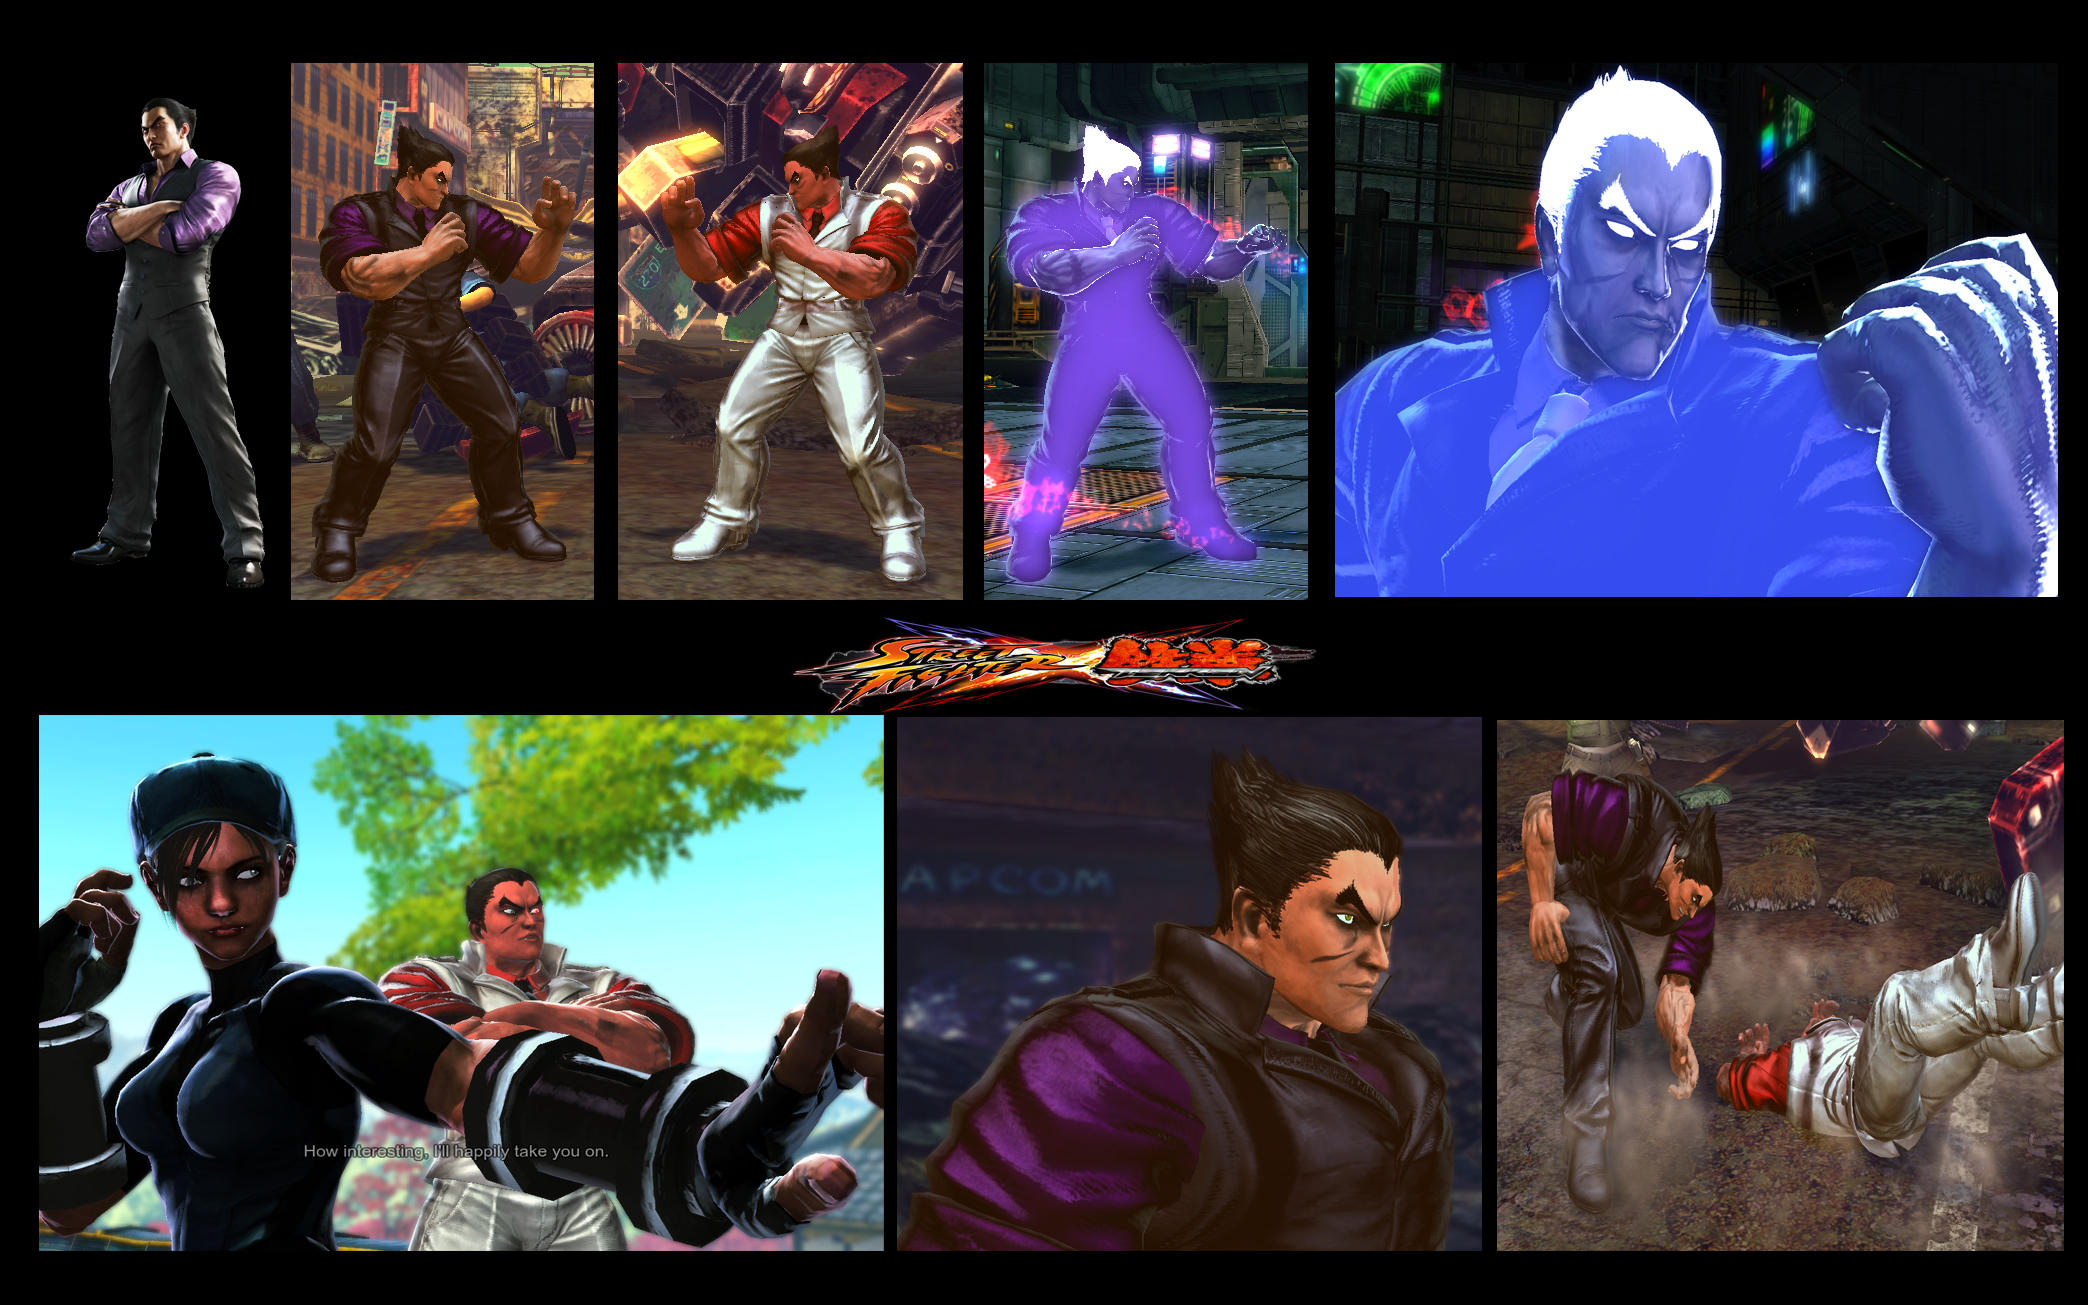 SF X TEKKEN CEO Kazuya from Blood Vengeance v 1.5 by monkeygigabuster